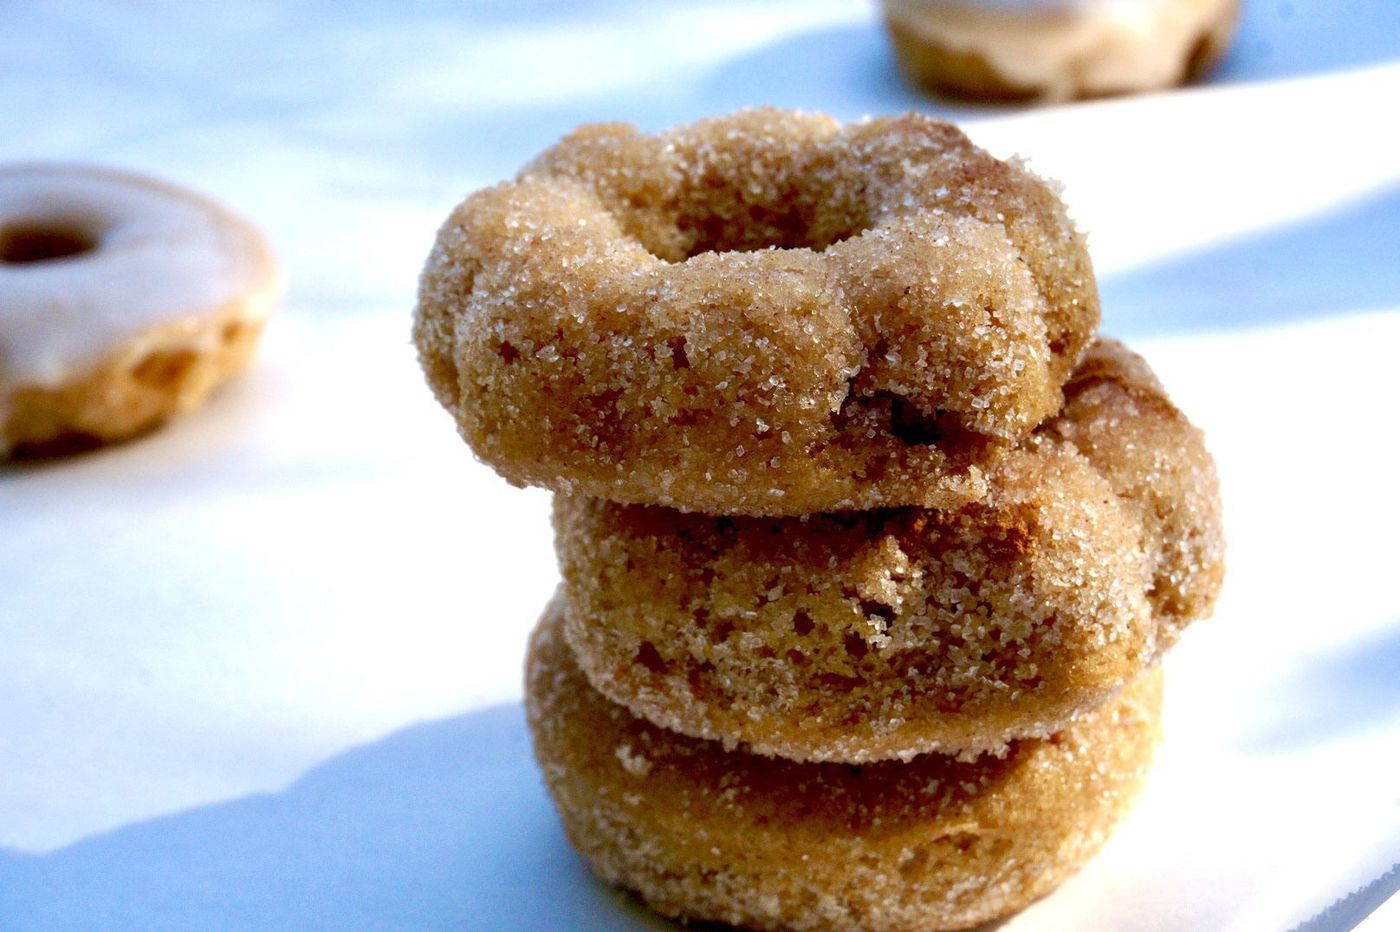 After you get the apple cider, it's time to make doughnuts